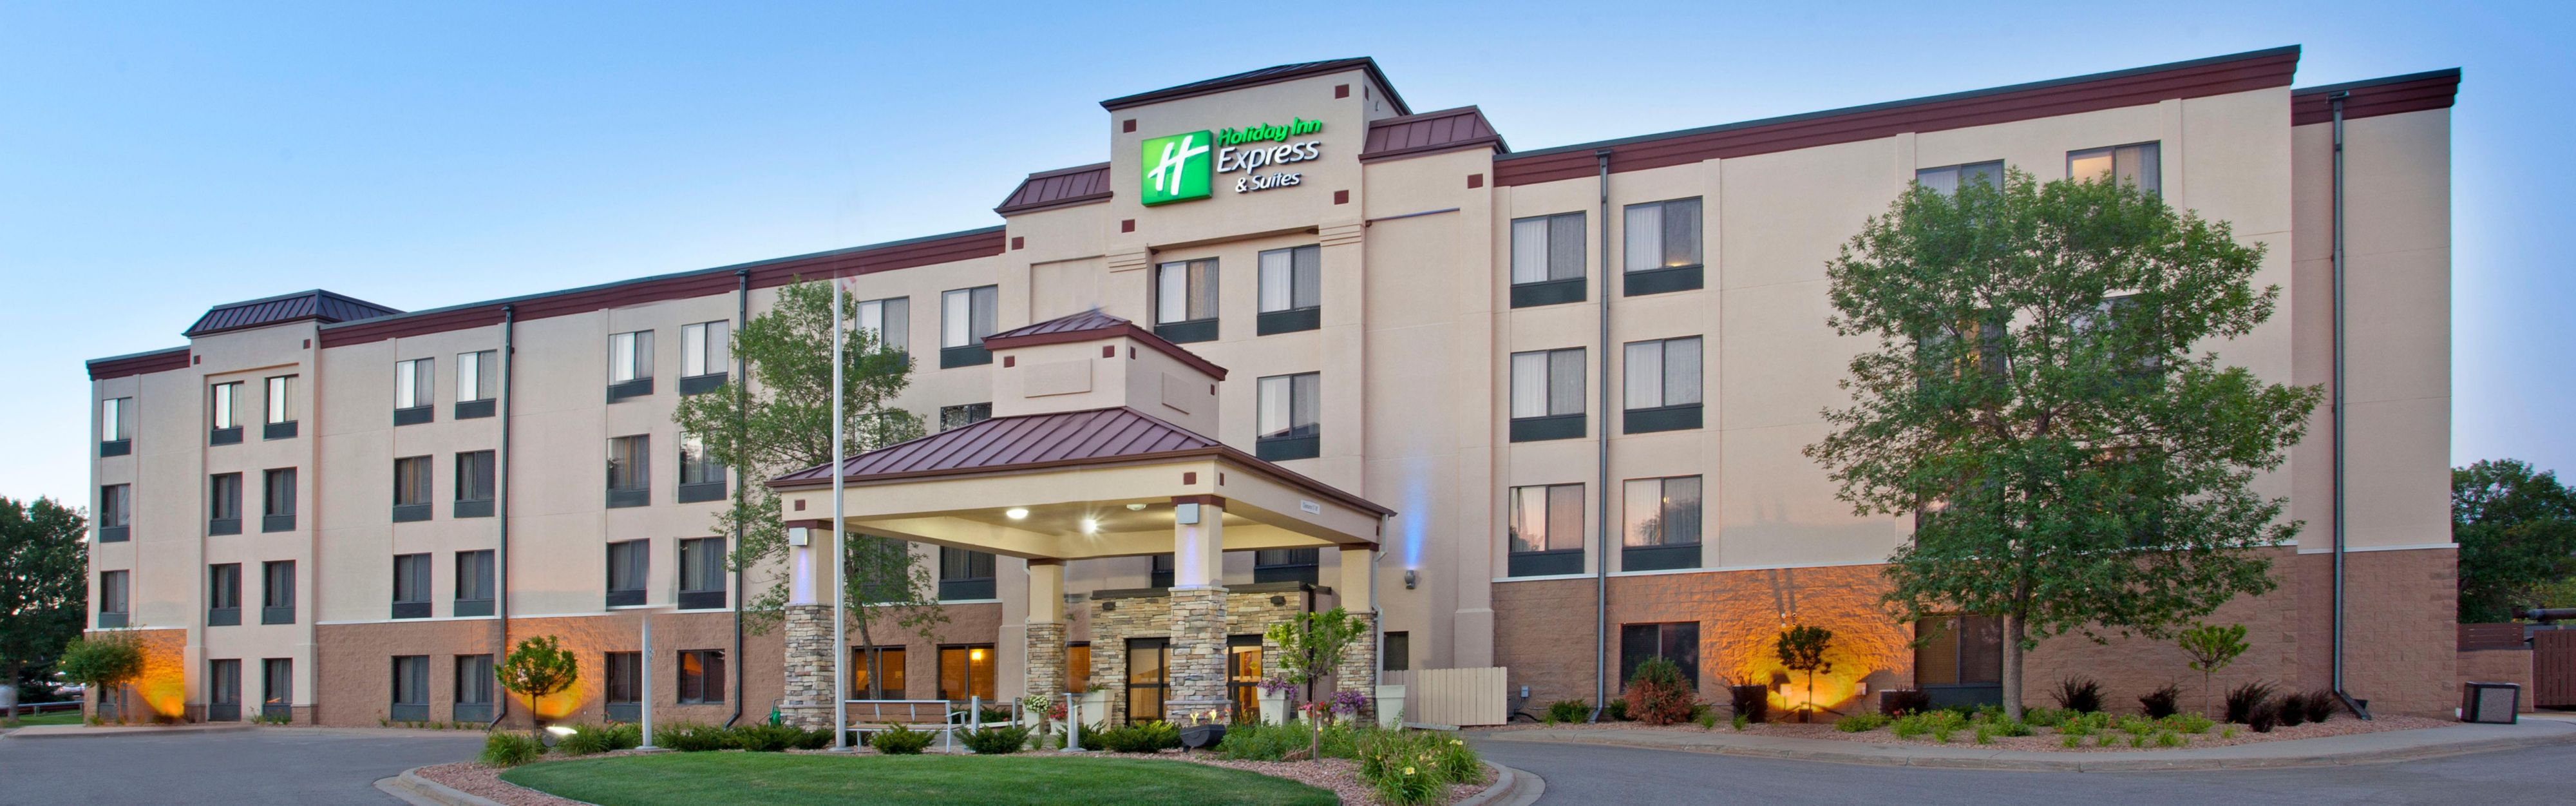 Motels In Eden Prairie Mn